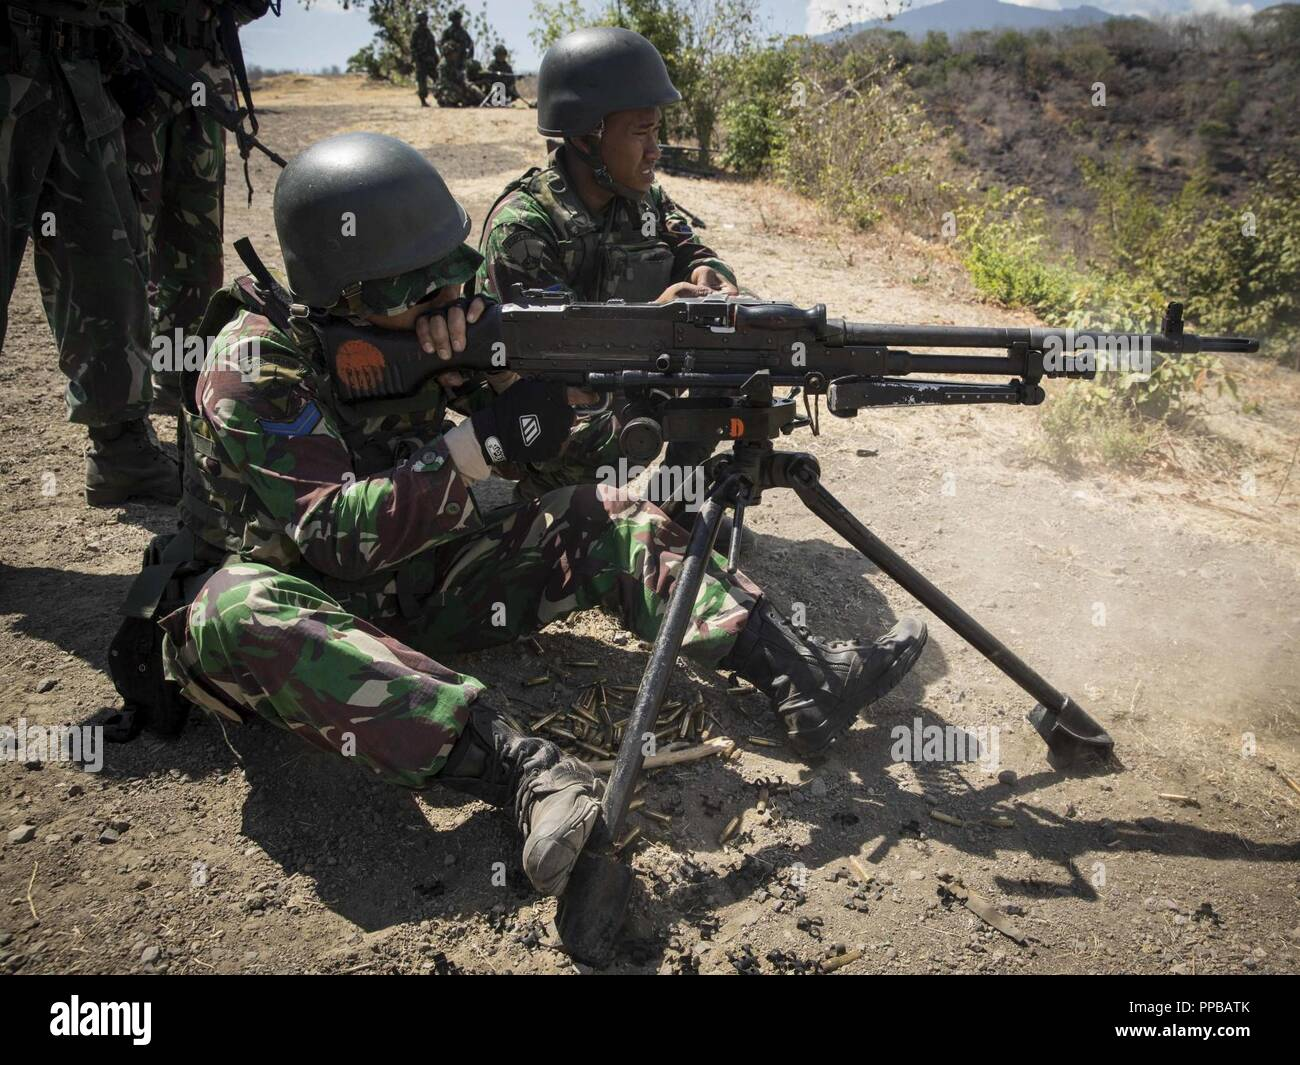 INDONESIA (Aug  17, 2018) - An Indonesian marine fires his machine